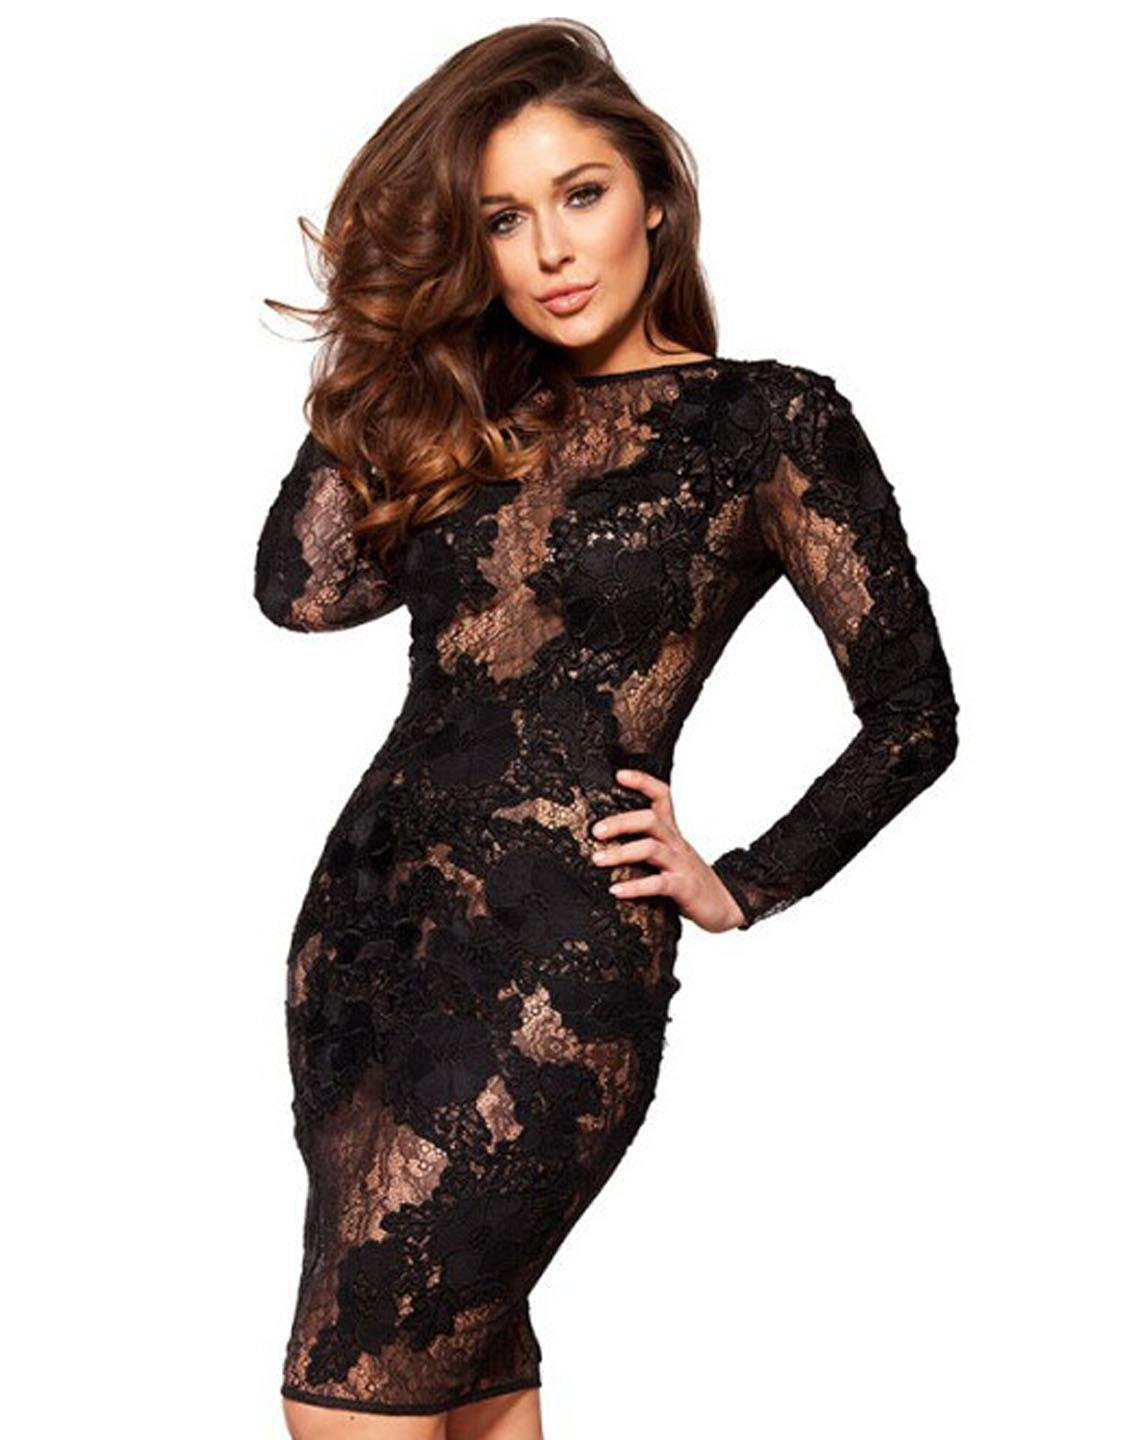 Floral Lace New Fashion Long Sleeve L Size Black Sexy Dress With Scoop Neckline W850328A